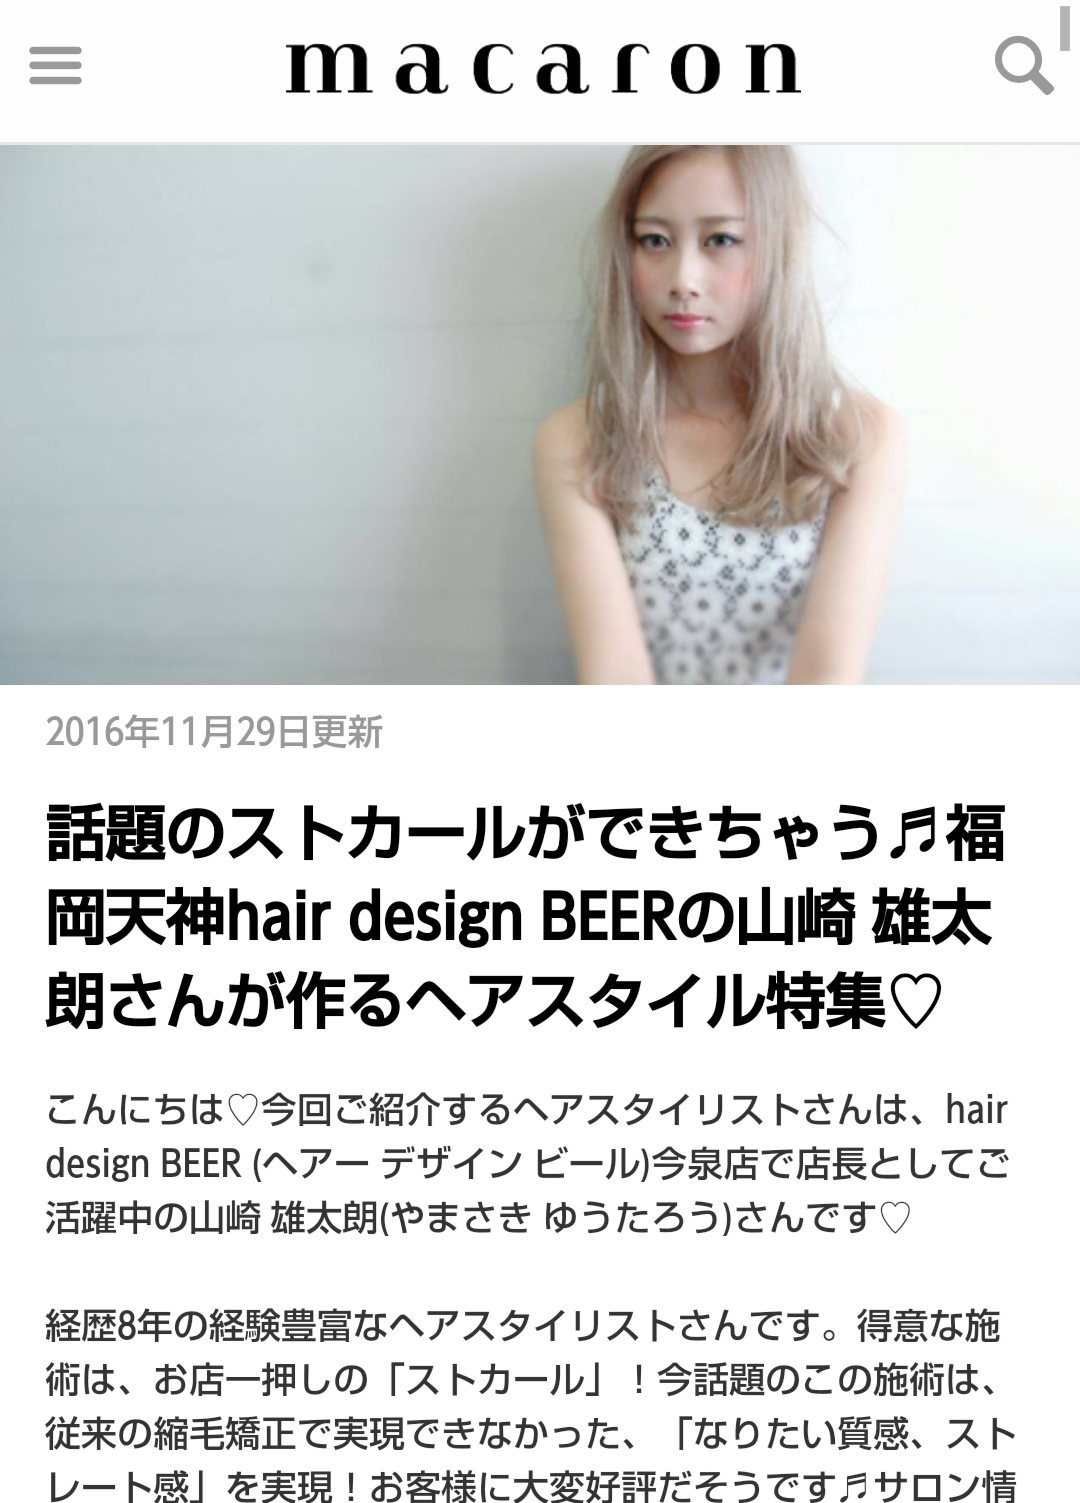 http://ad1030pcqc.smartrelease.jp/news/photo/Screenshot_2016-11-30-12-19-.png